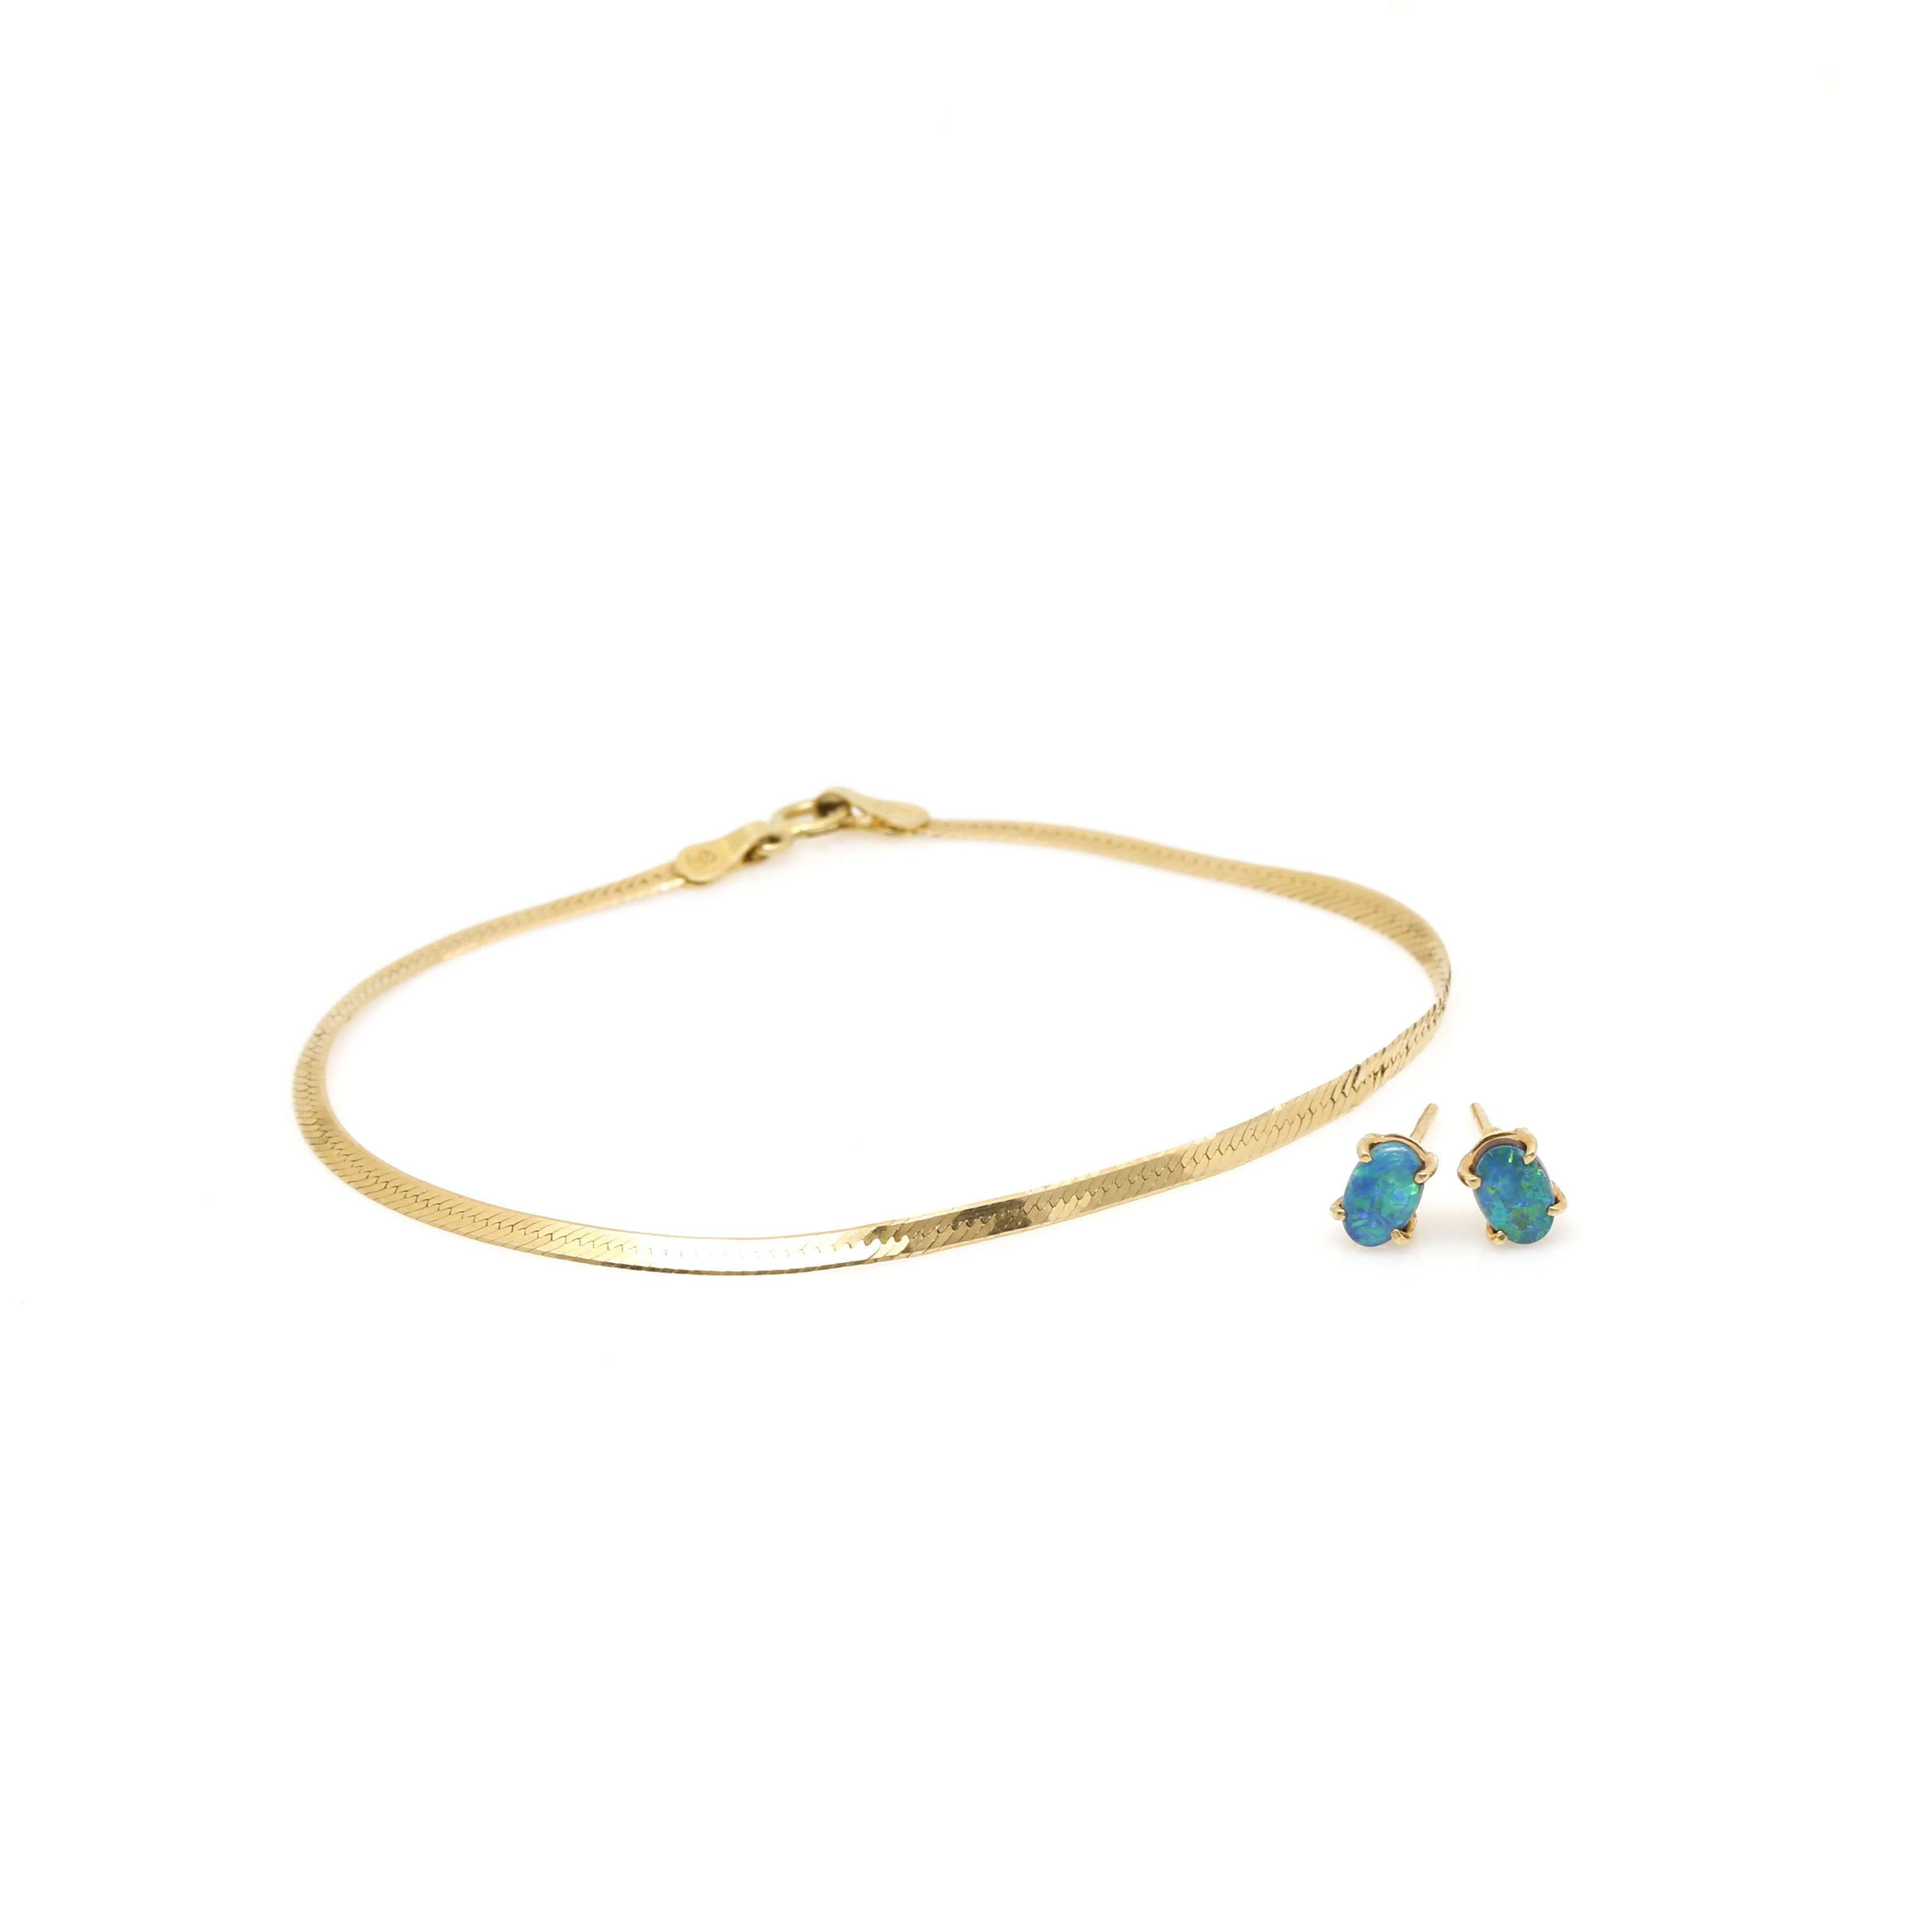 10K and 14K Yellow Gold Opal Doublet Earrings and 14K Yellow Gold Bracelet